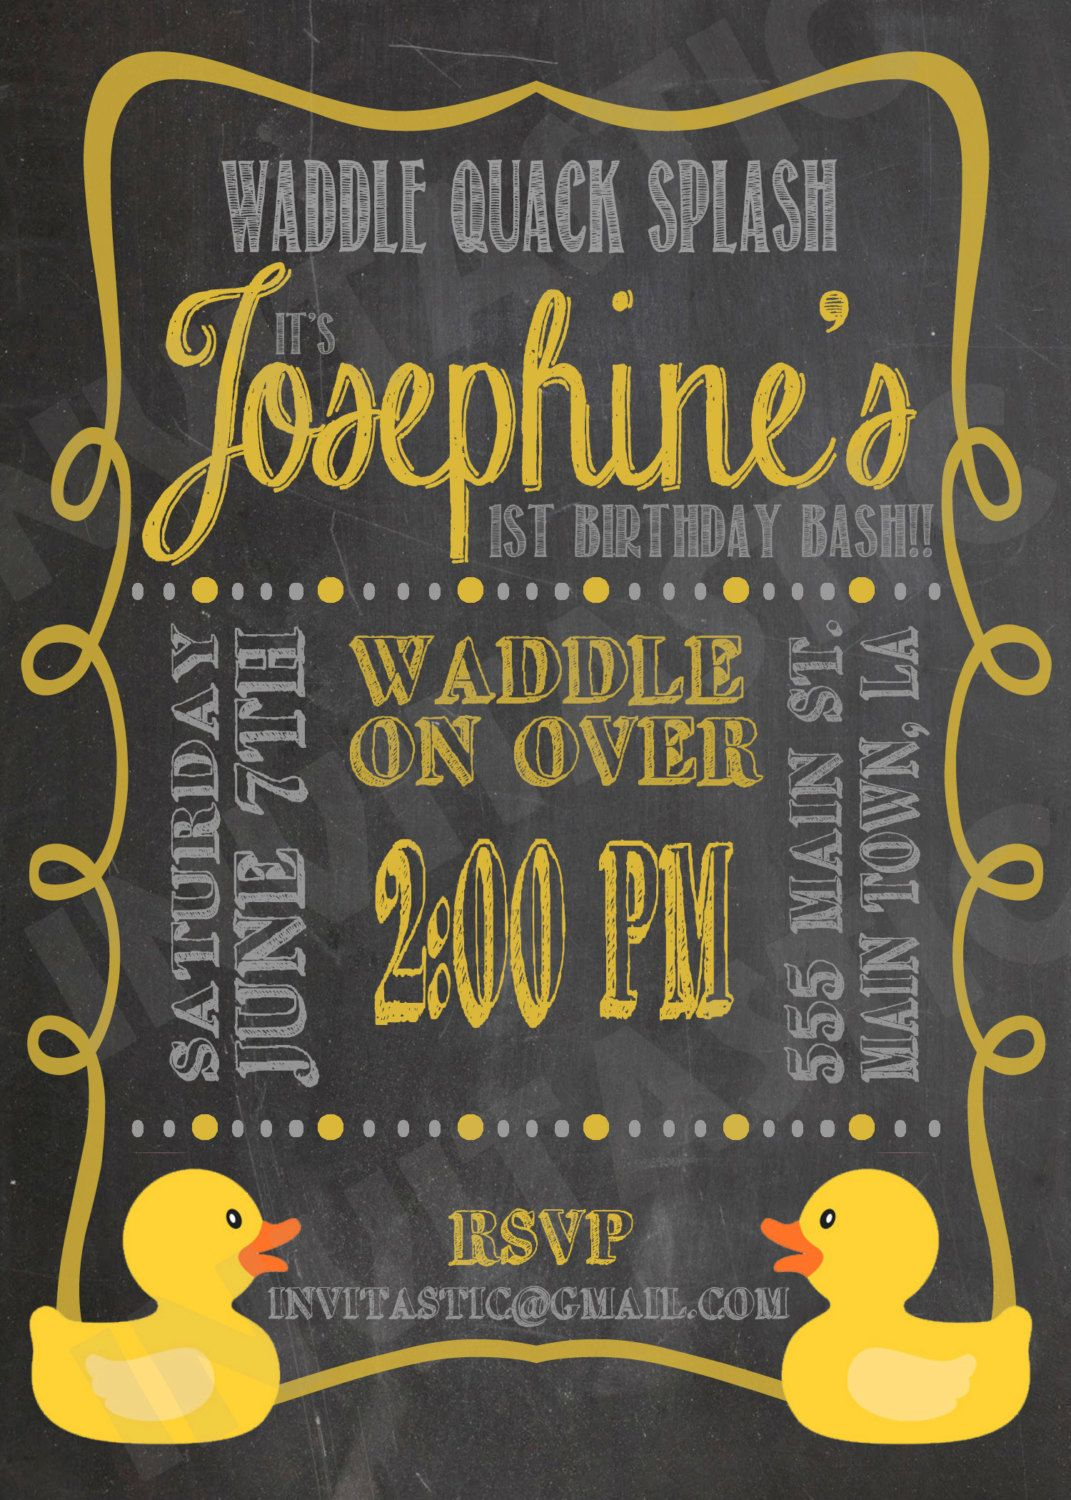 Rubber duck birthday invitation chalkboard rubber ducky invitation rubber duck birthday invitation chalkboard rubber ducky invitation rubber duck theme available for shower and gender parties too filmwisefo Image collections